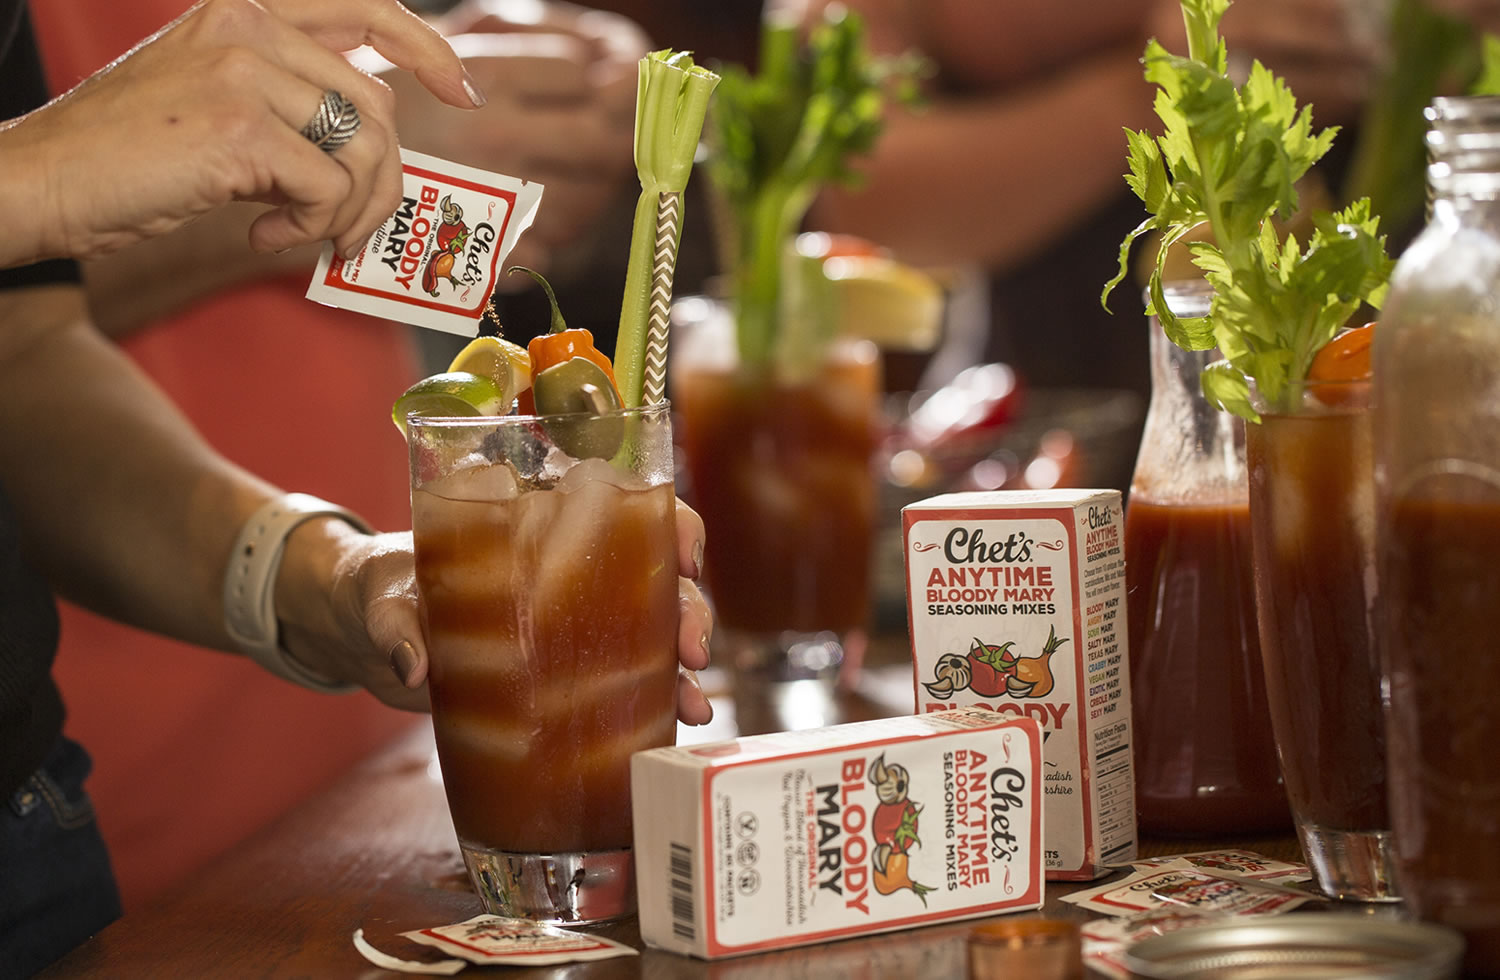 chets bloody mary individual packet